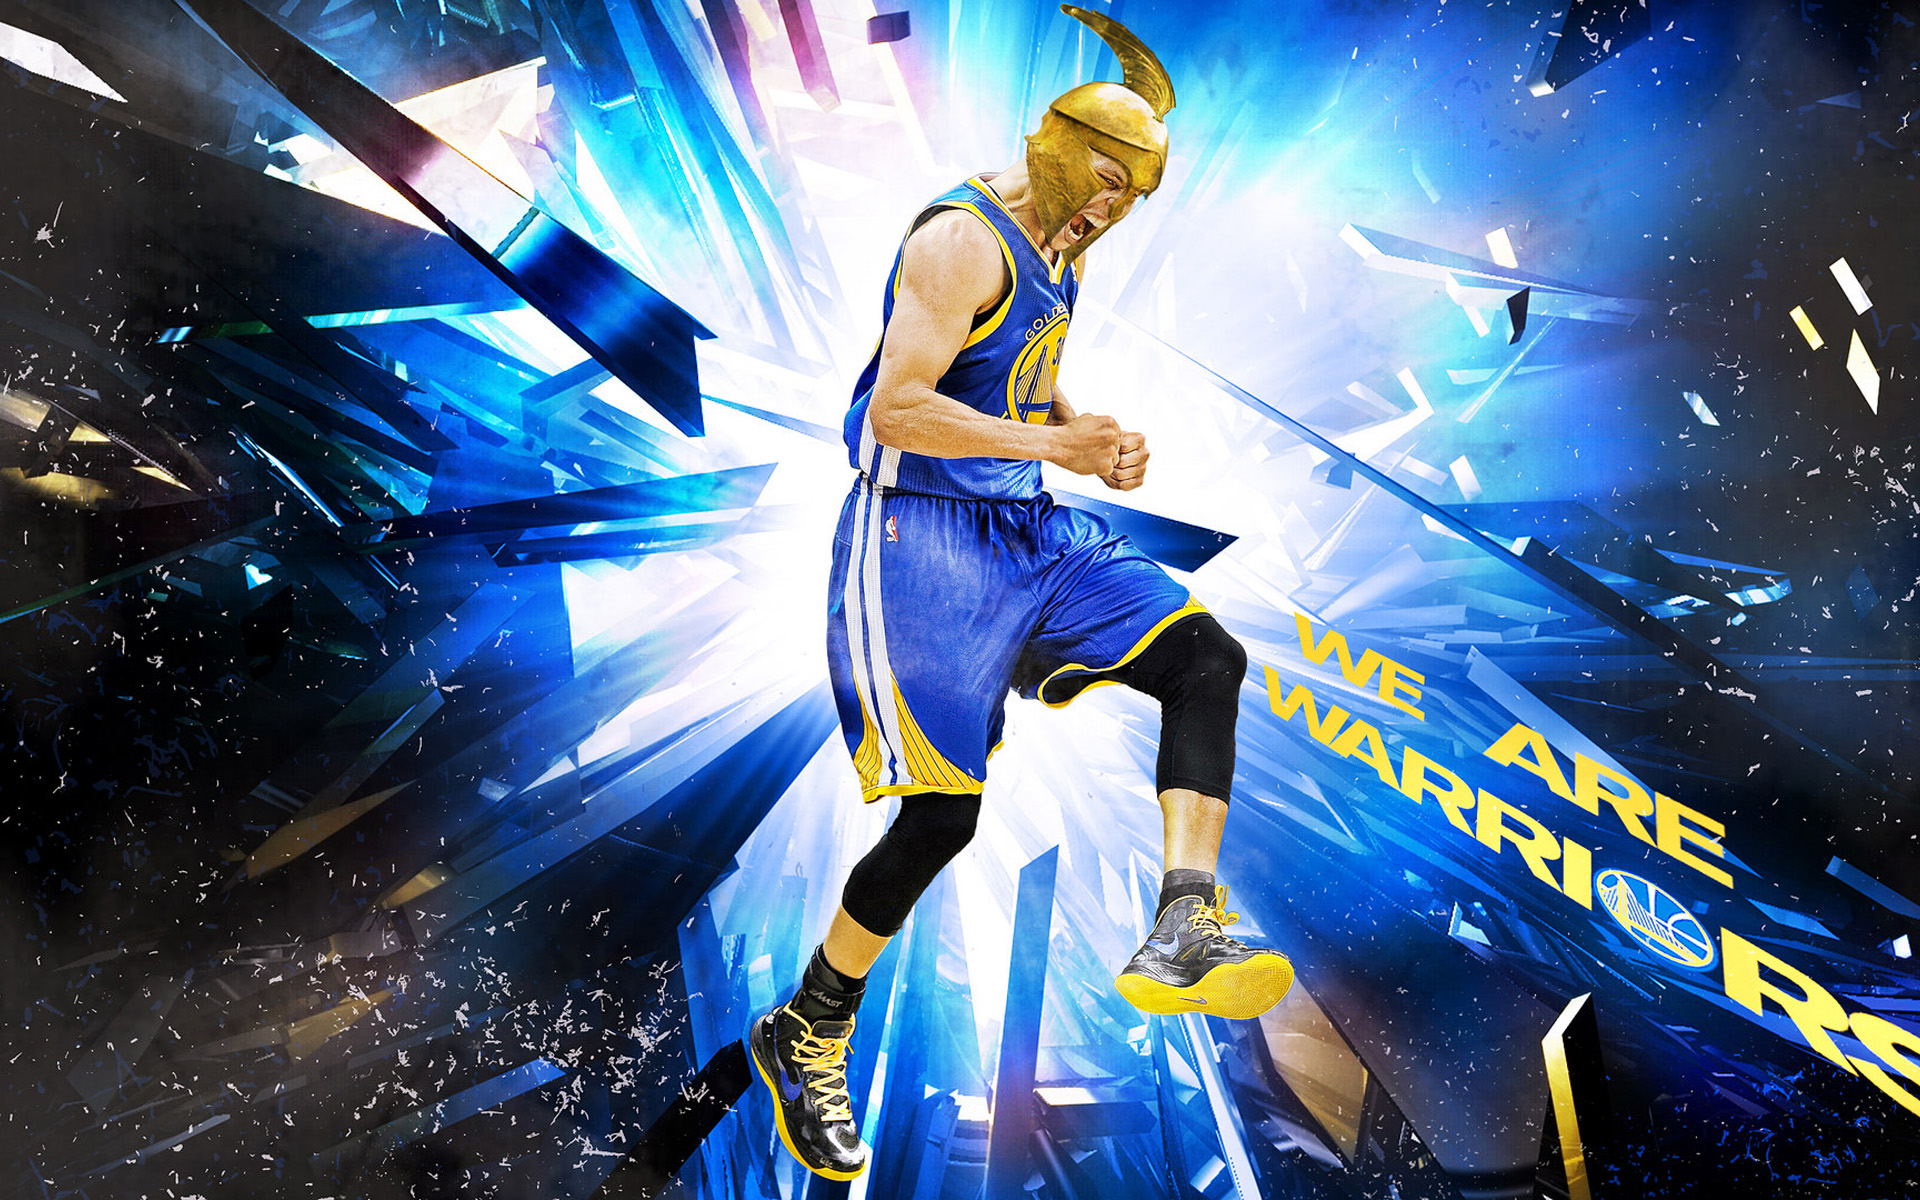 Stephen Curry cool wallpapers HD Wallpaper Downloads 1920x1200